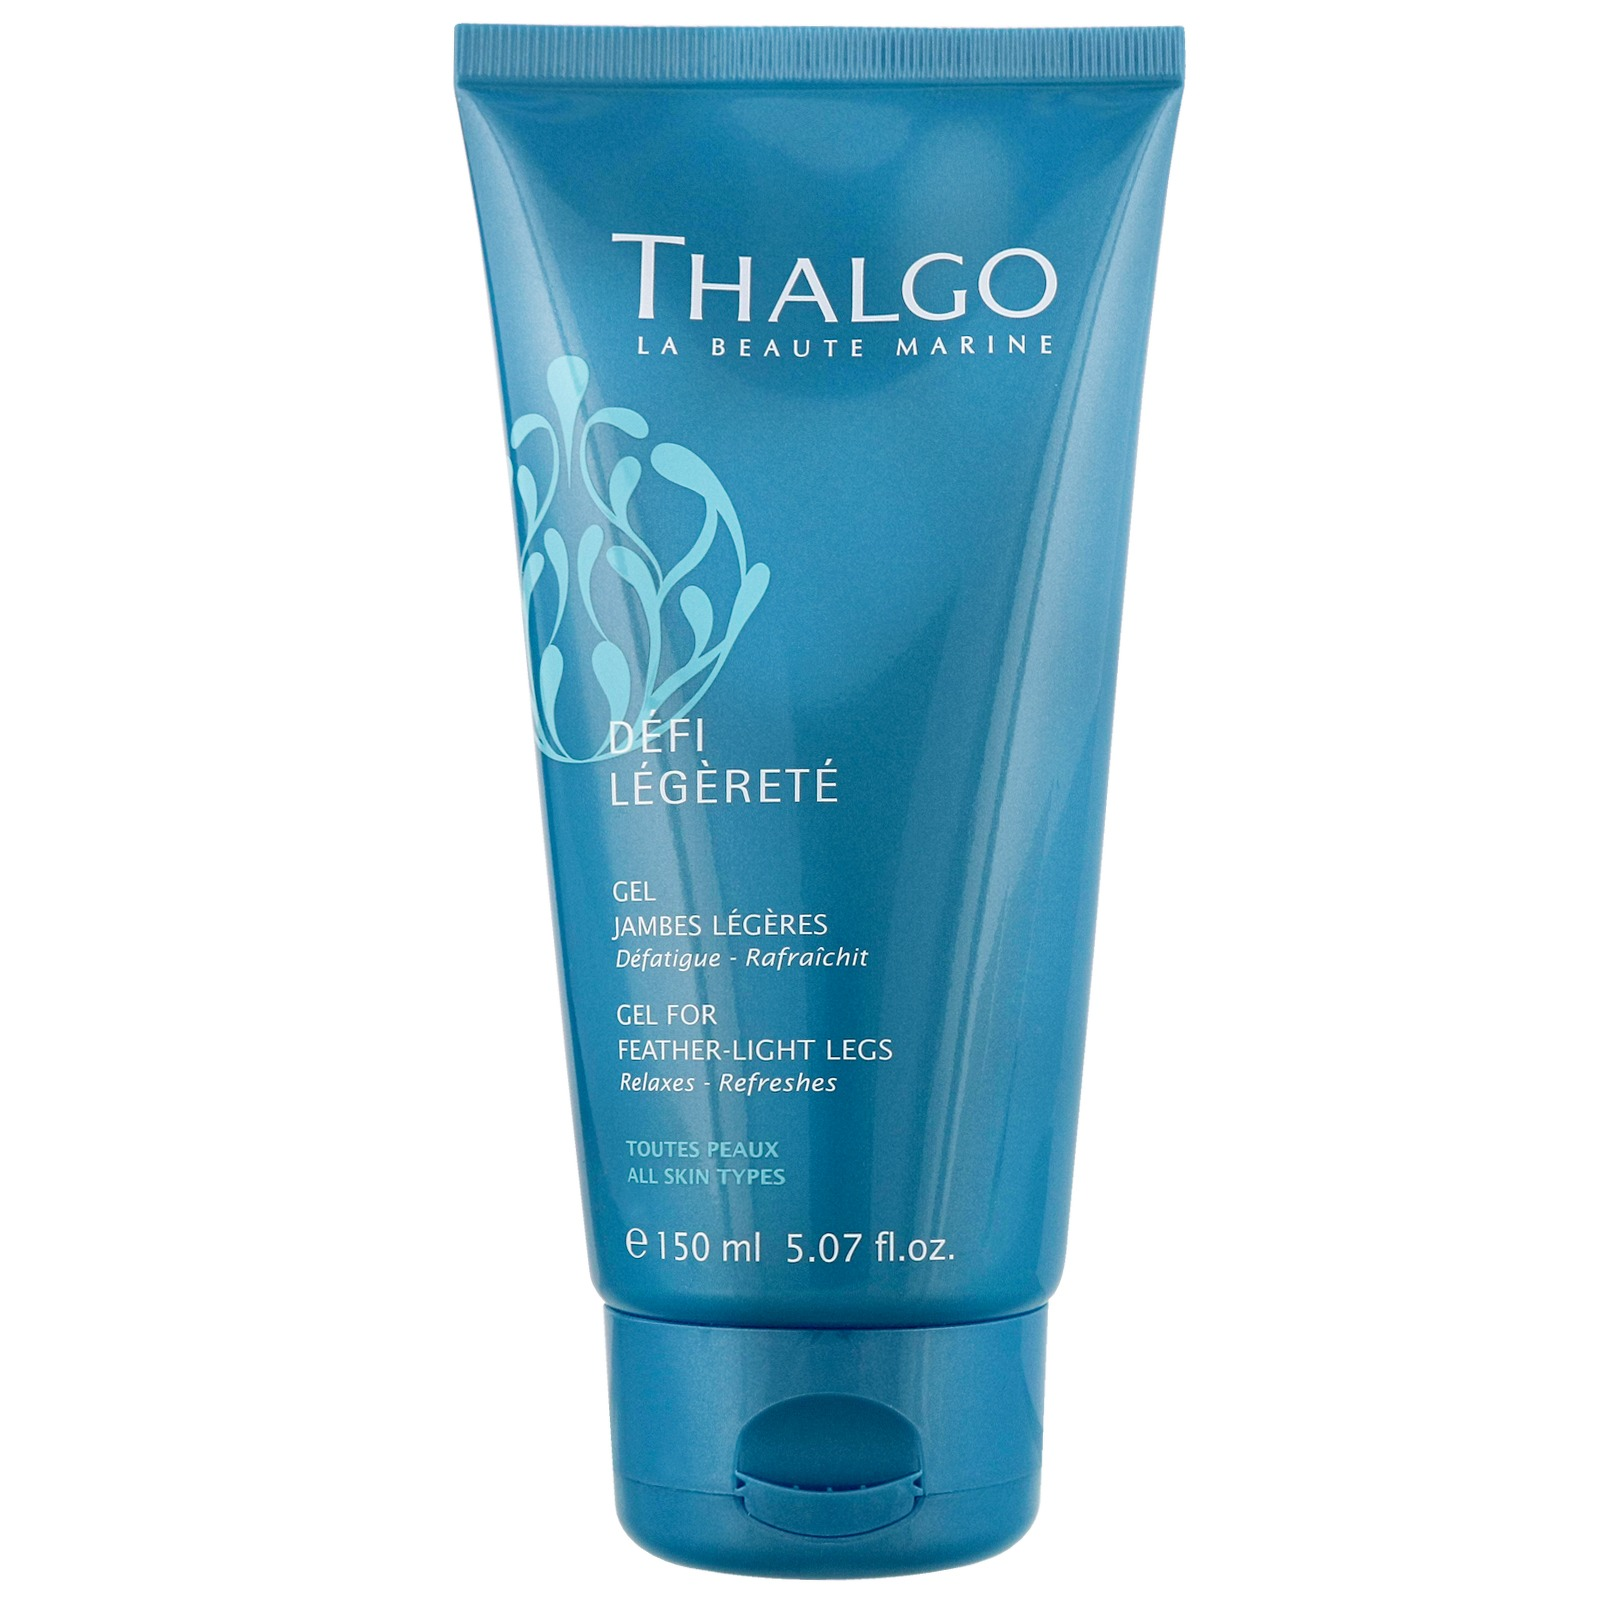 Thalgo Marine Slimming Gel for Feather-Light Legs 150ml